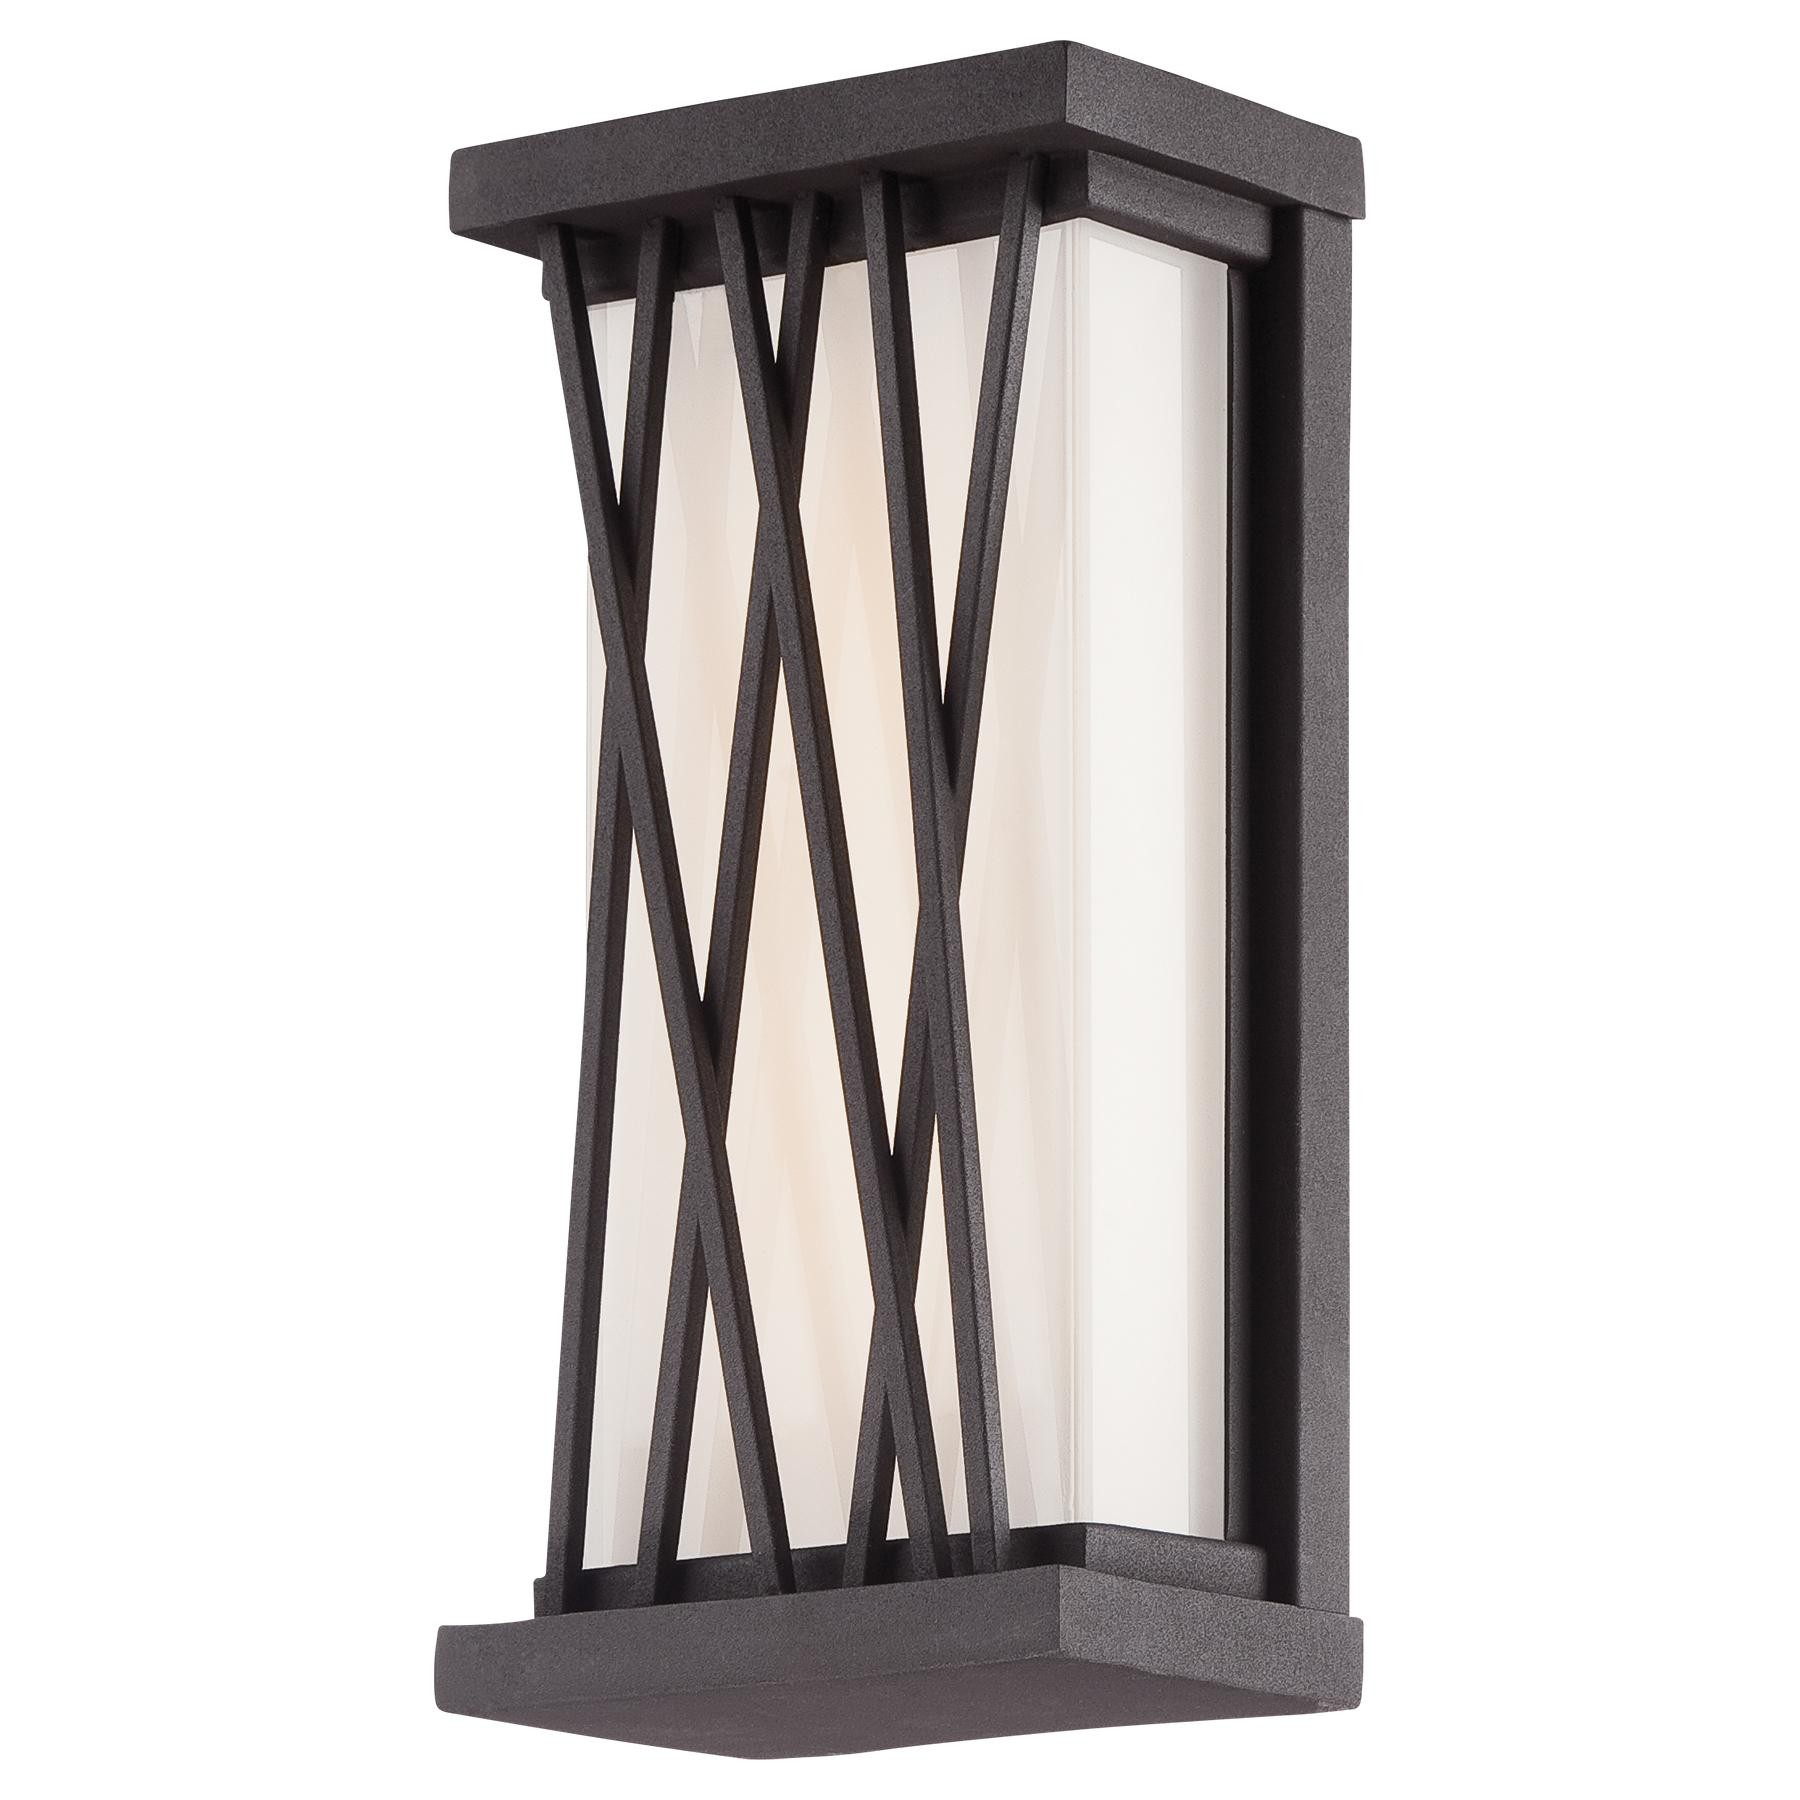 Led outdoor wall lights - enhance the architectural ... on Outdoor Wall Sconce Lighting id=84177